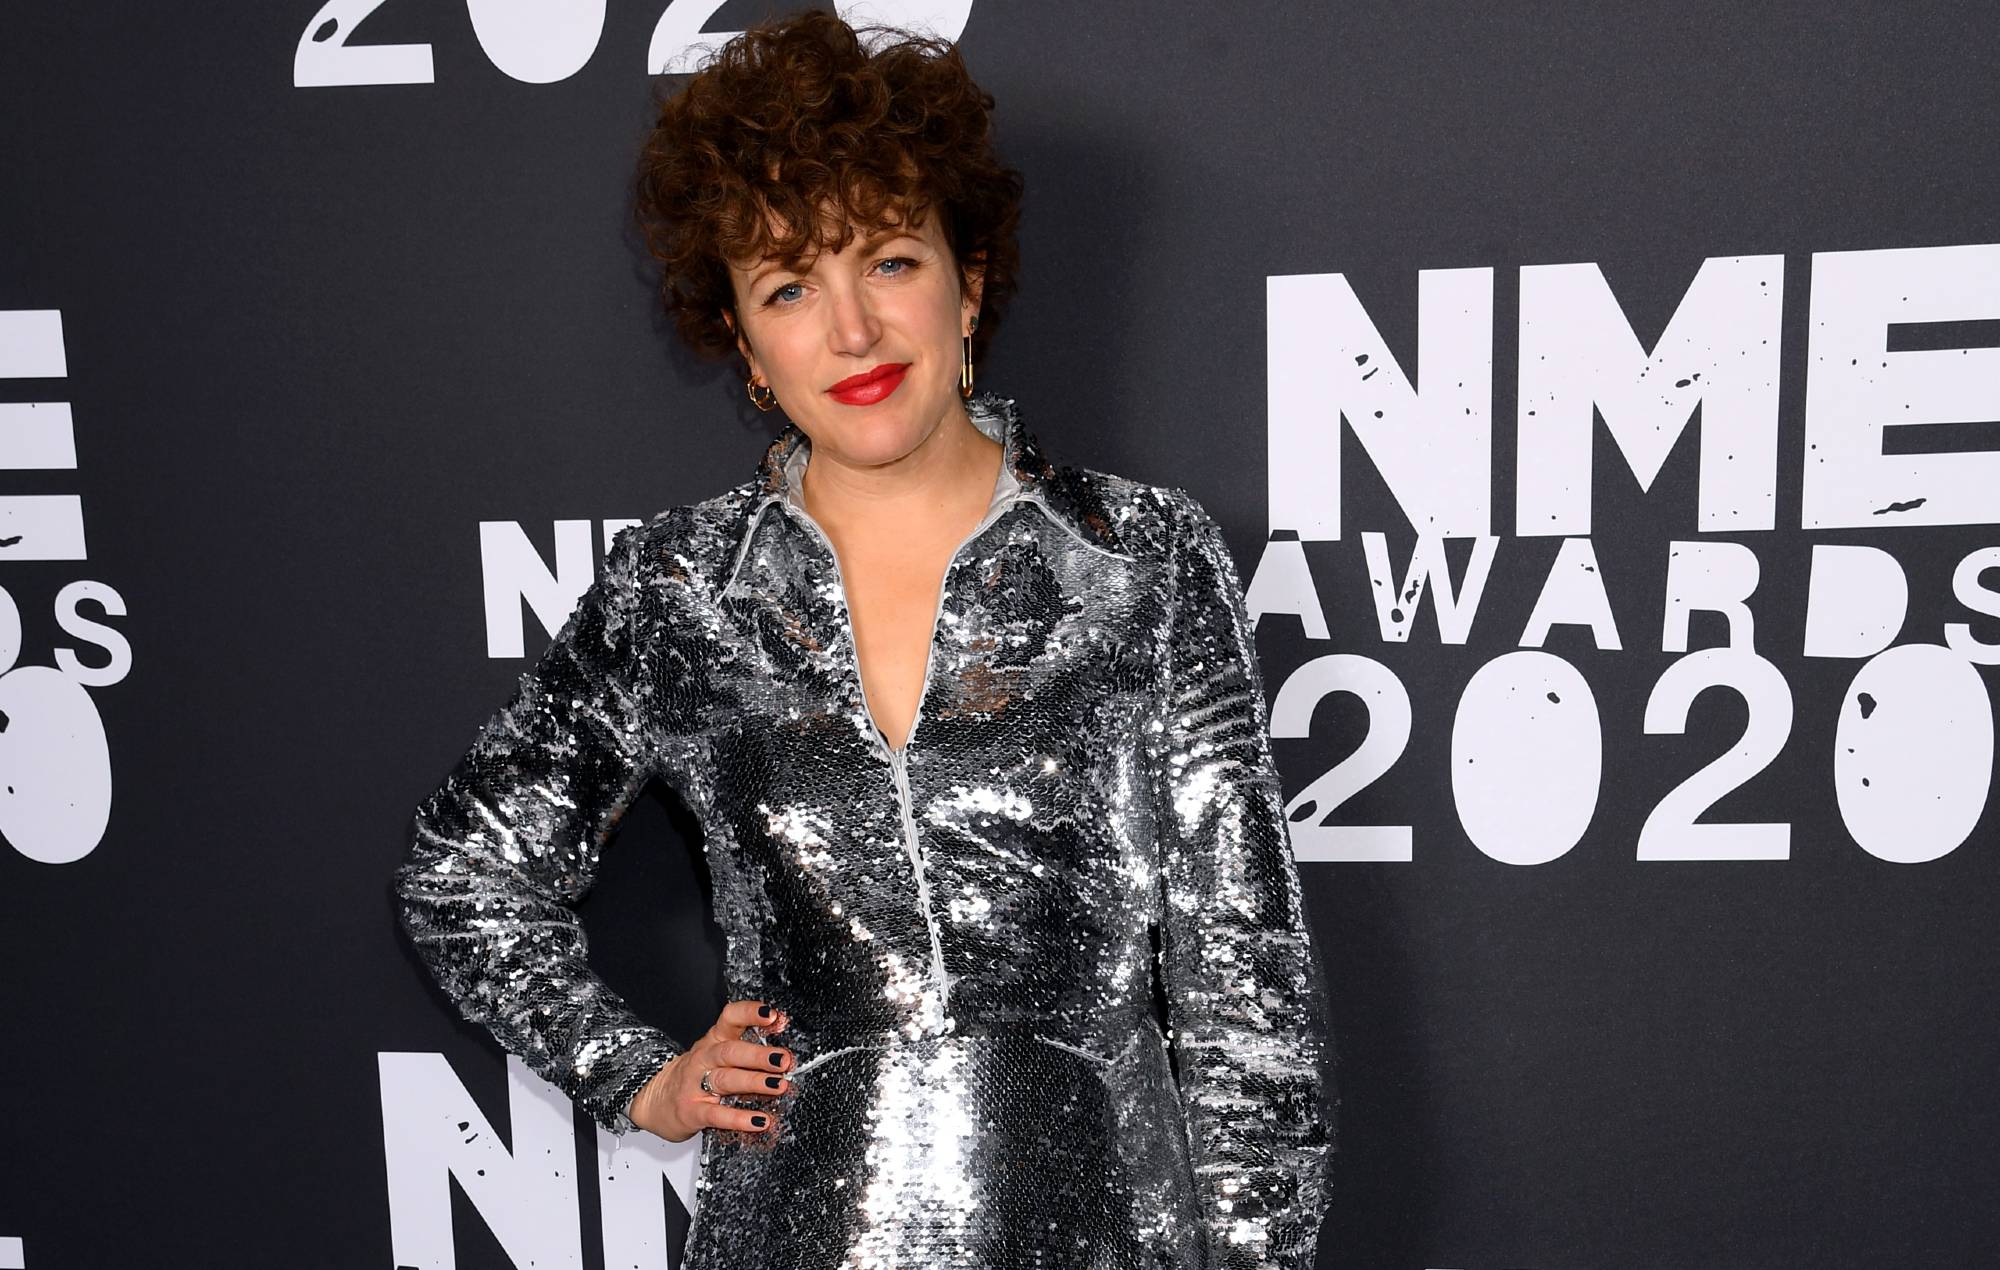 """Annie Mac hails females in broadcasting, says Chris Moyles """"seemed to use women as props for jokes"""""""